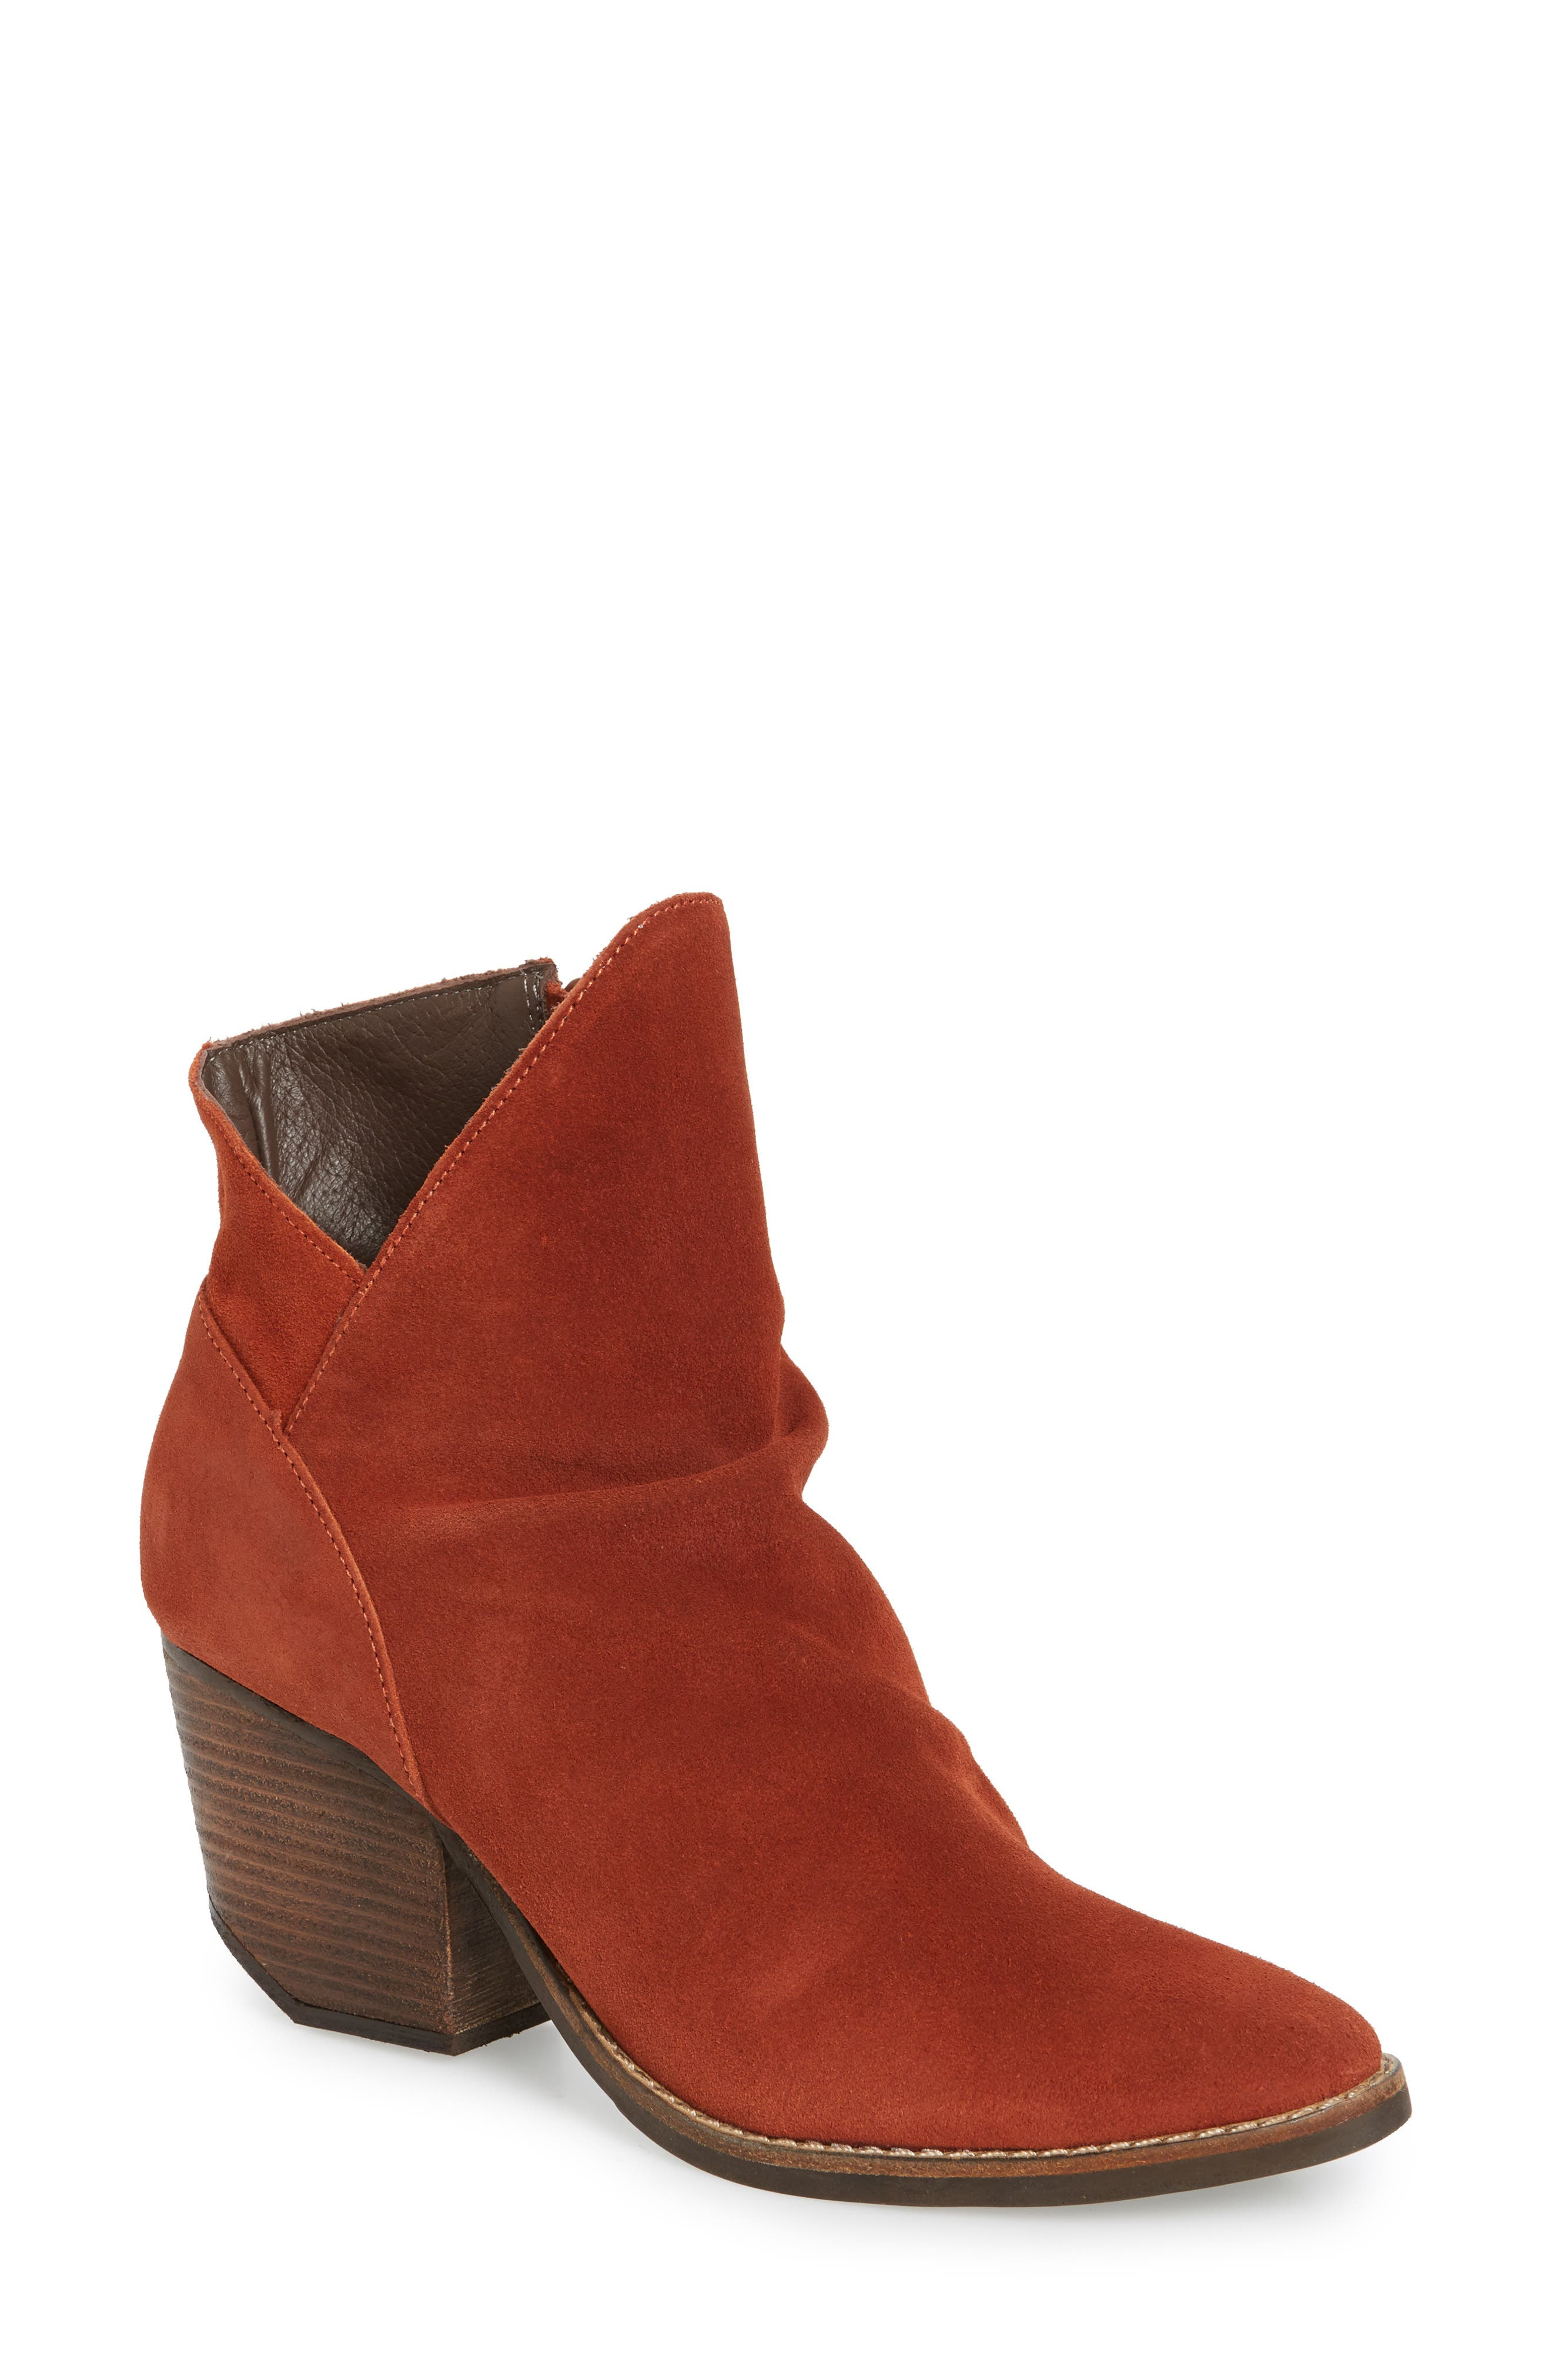 Society Bootie,                         Main,                         color, Rust Suede